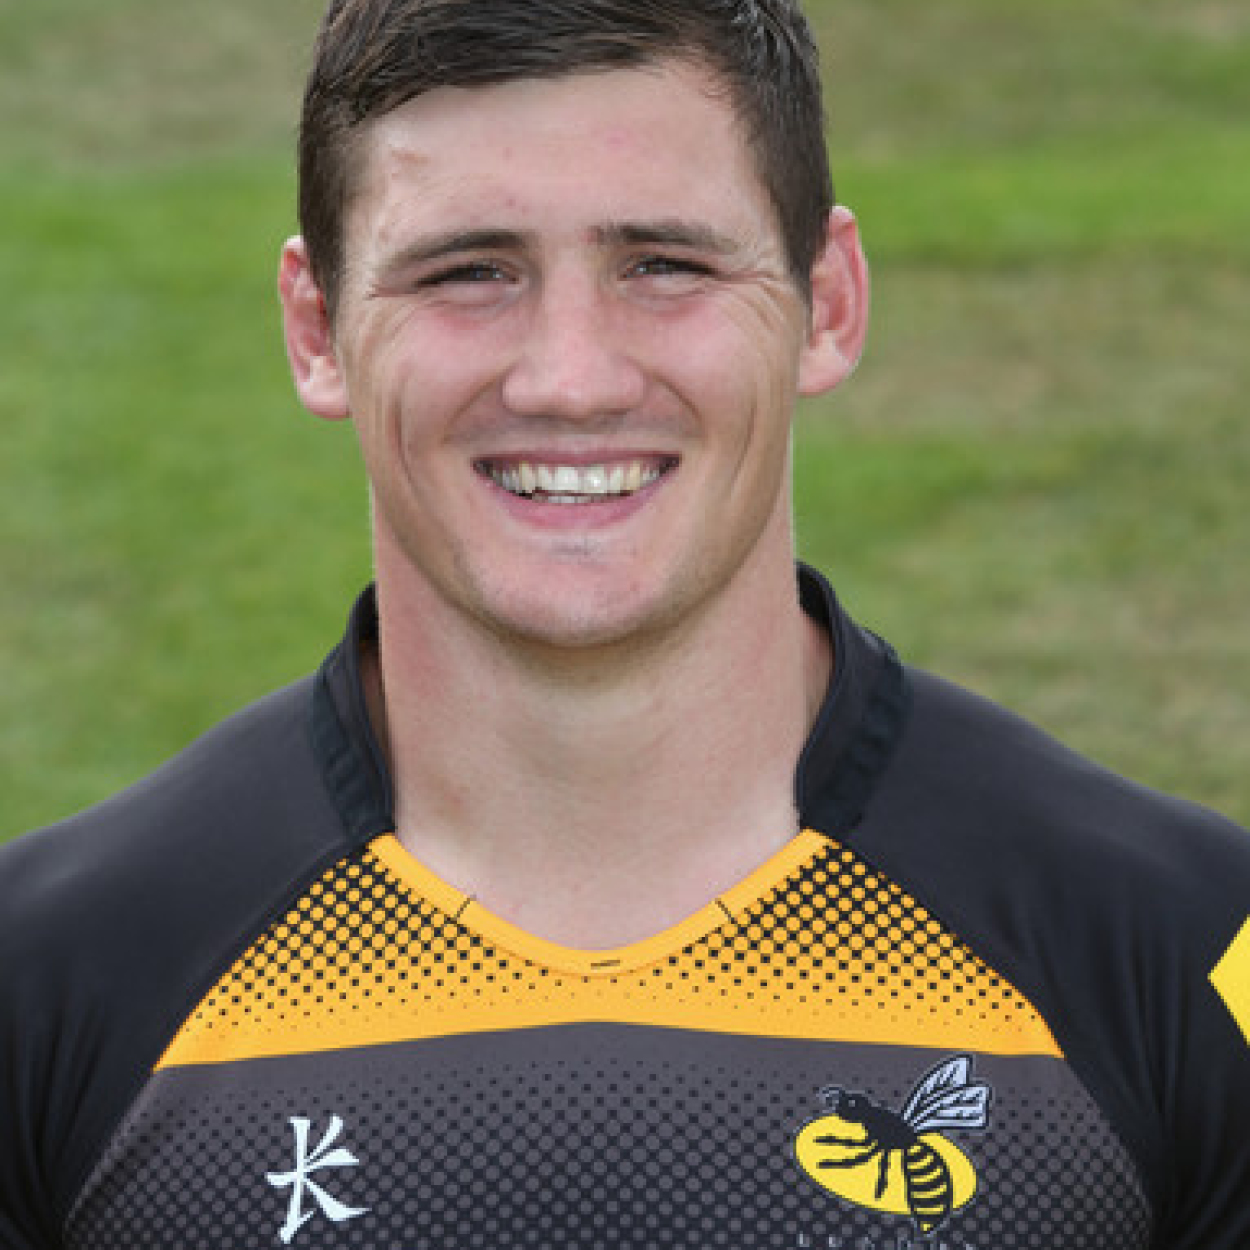 """GUY THOMPSON   """"I played rugby along Adam years ago and even at that age he had incredible discipline in his training and great knowledge of nutrition. This season I needed to bulk up my frame, but keep key attributes that aid my rugby career, mainly speed and agility. I didn't hesitate to contact Adam as his experience in rugby and nutrition go hand in hand. He designed me a nutrition plan and kept tabs on me whilst I was on it. I managed to add 4-5kg of lean muscle which has, without a doubt helped my rugby career. I would recommend Adam to anyone looking to improve their physique, sporting skills or general well being."""""""